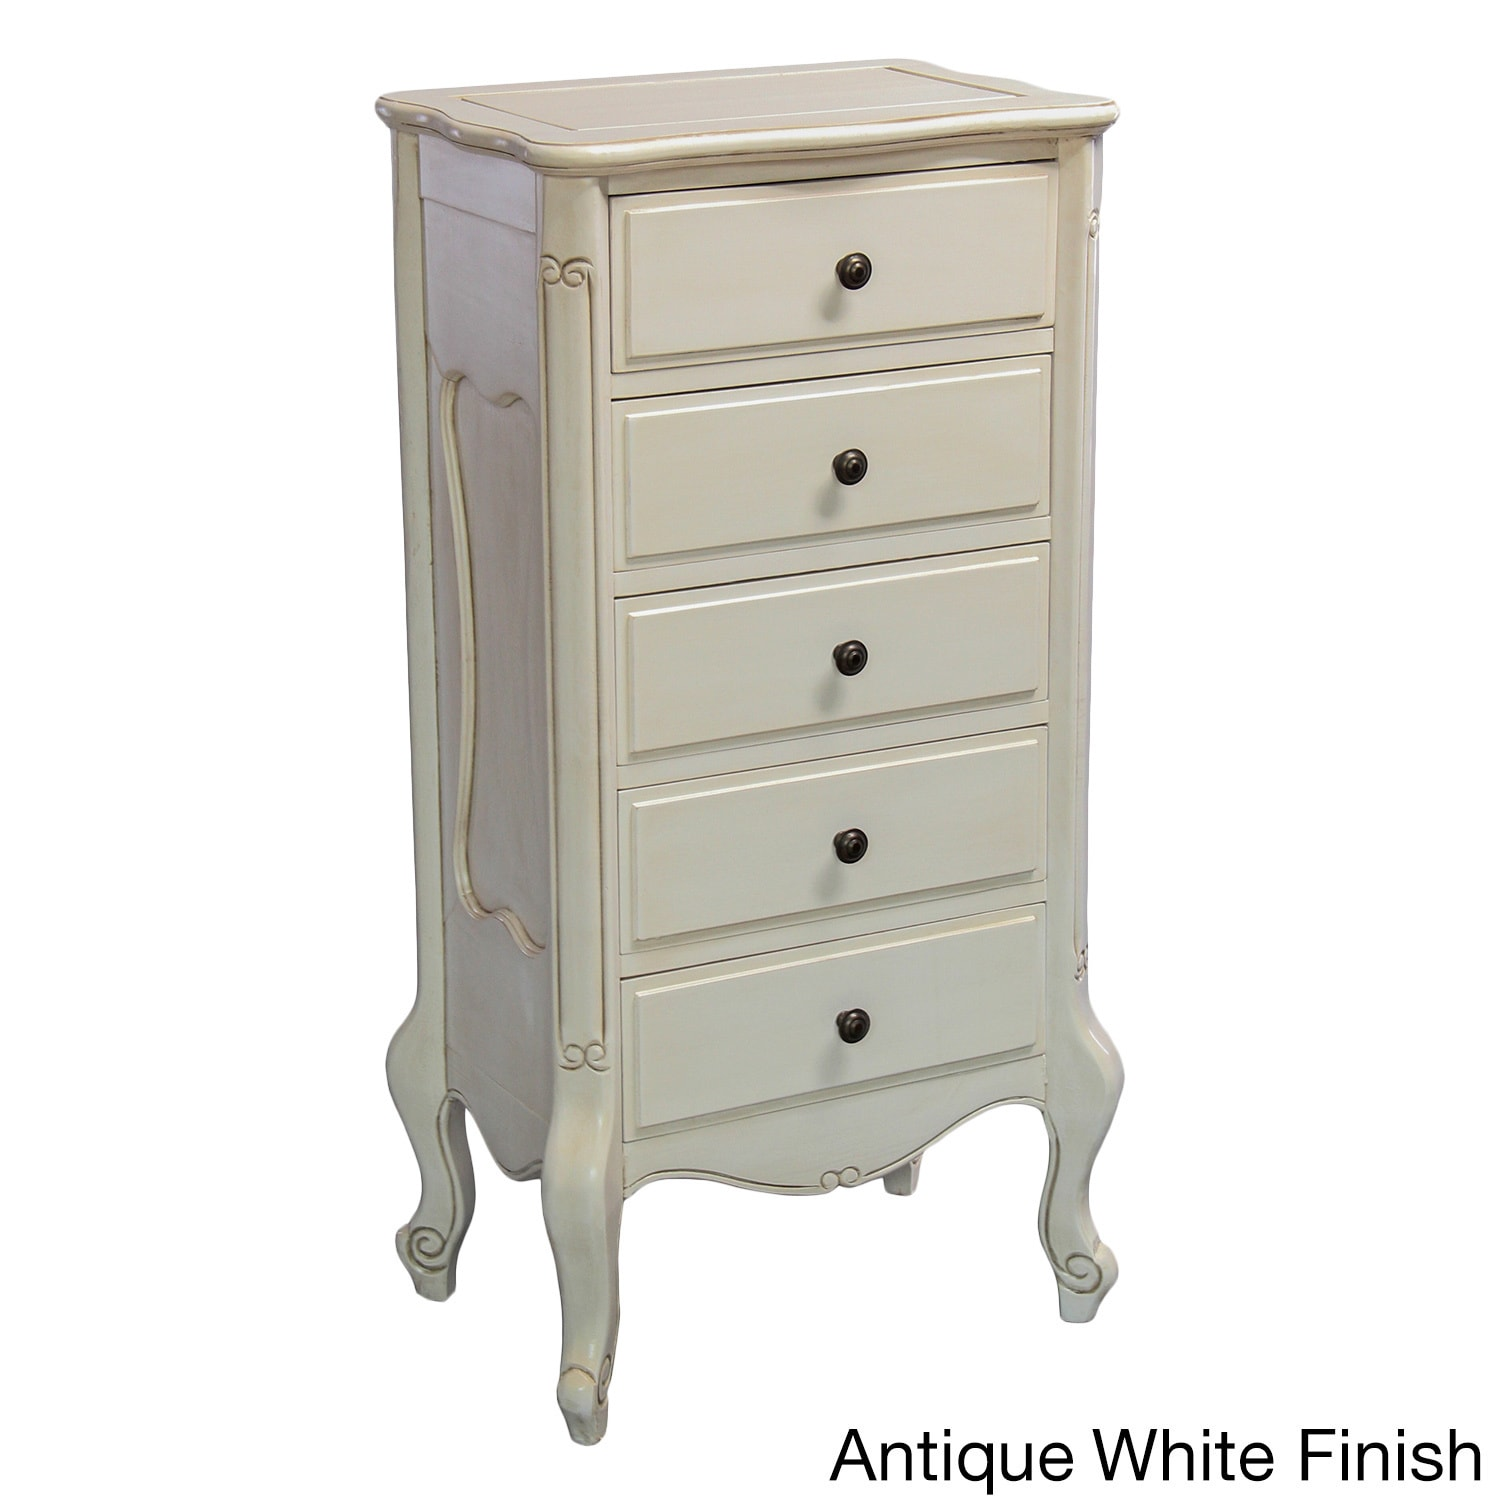 p chests the mirror drawers chest home white dressers flip bay mysteria top drawer dresser